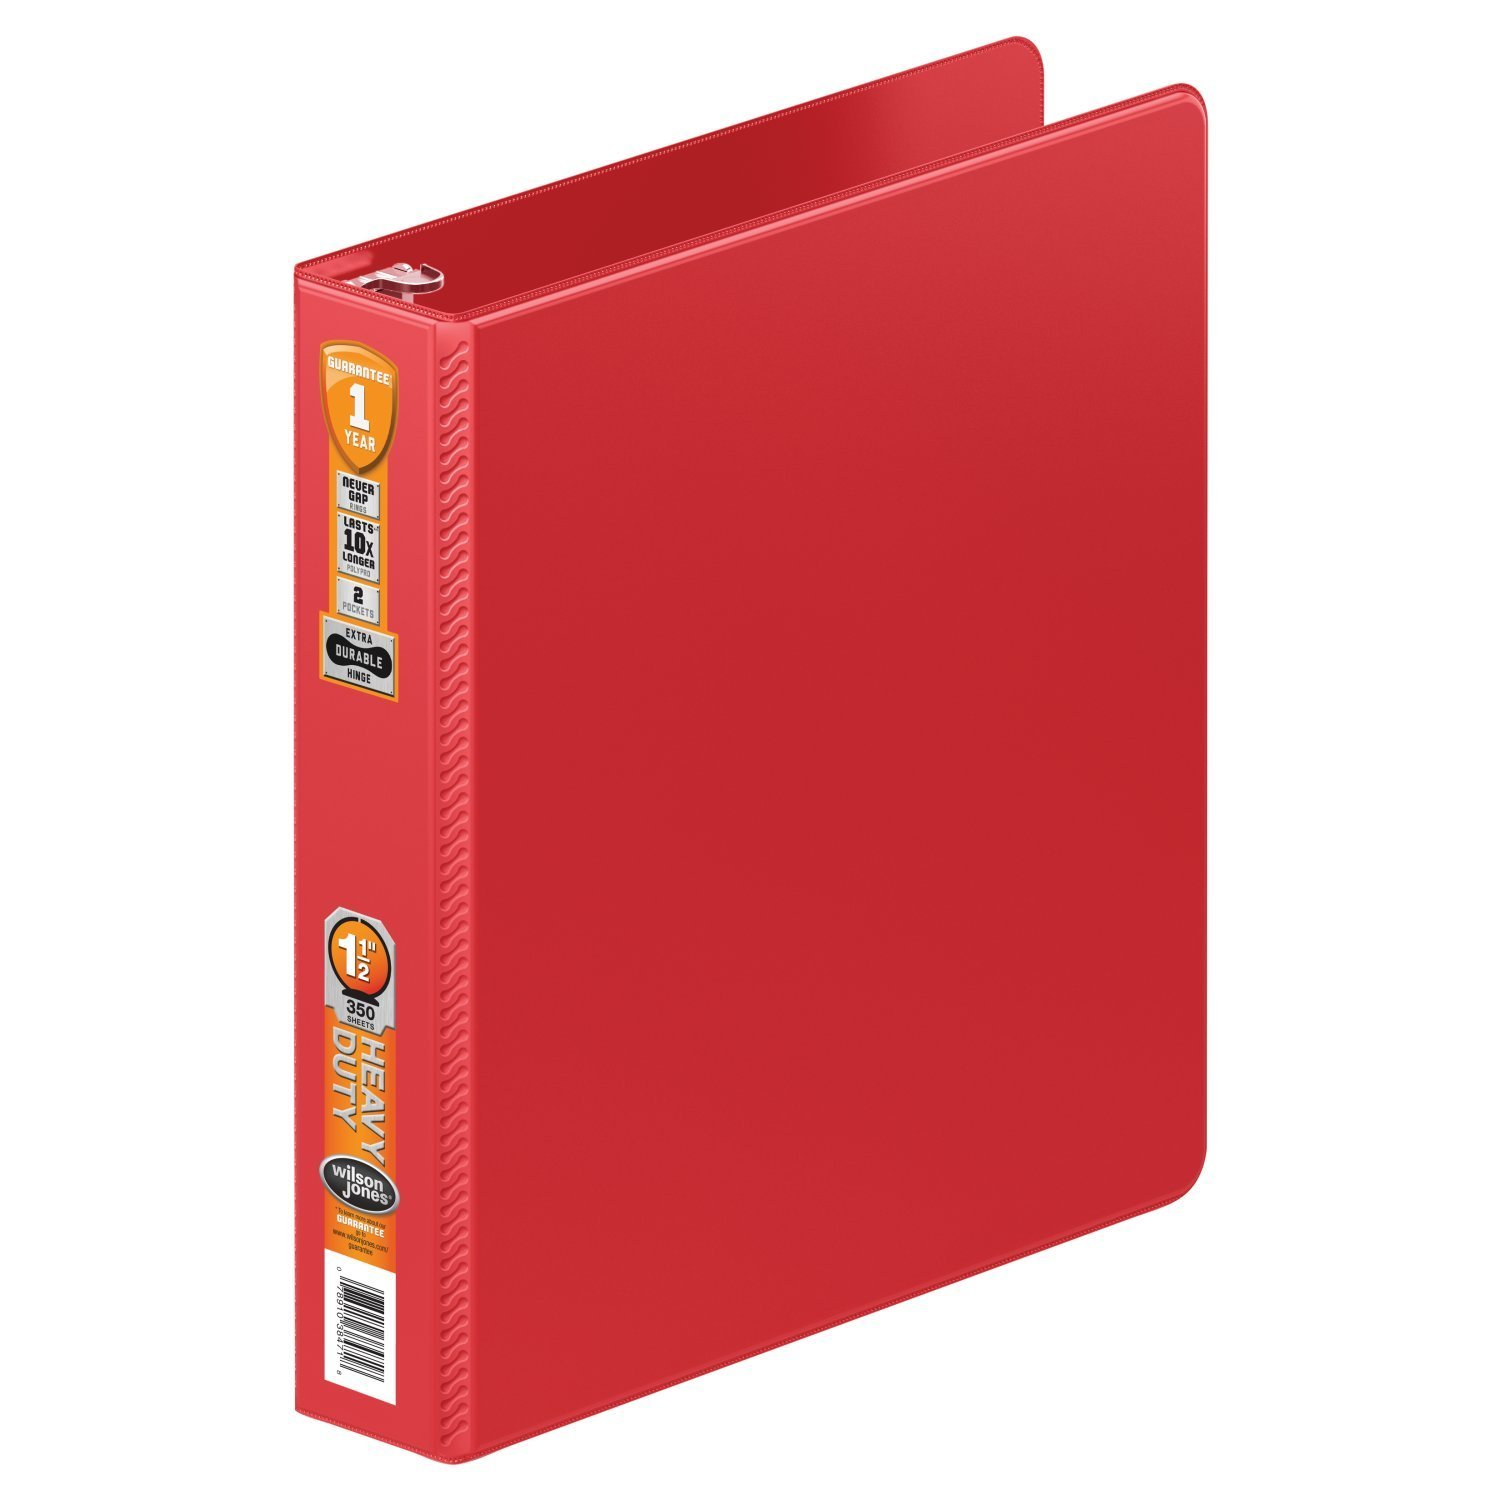 Wilson Jones Heavy Duty Round Ring Binder with Extra Durable Hinge, 1.5-Inch, Red (W364-34-1797)